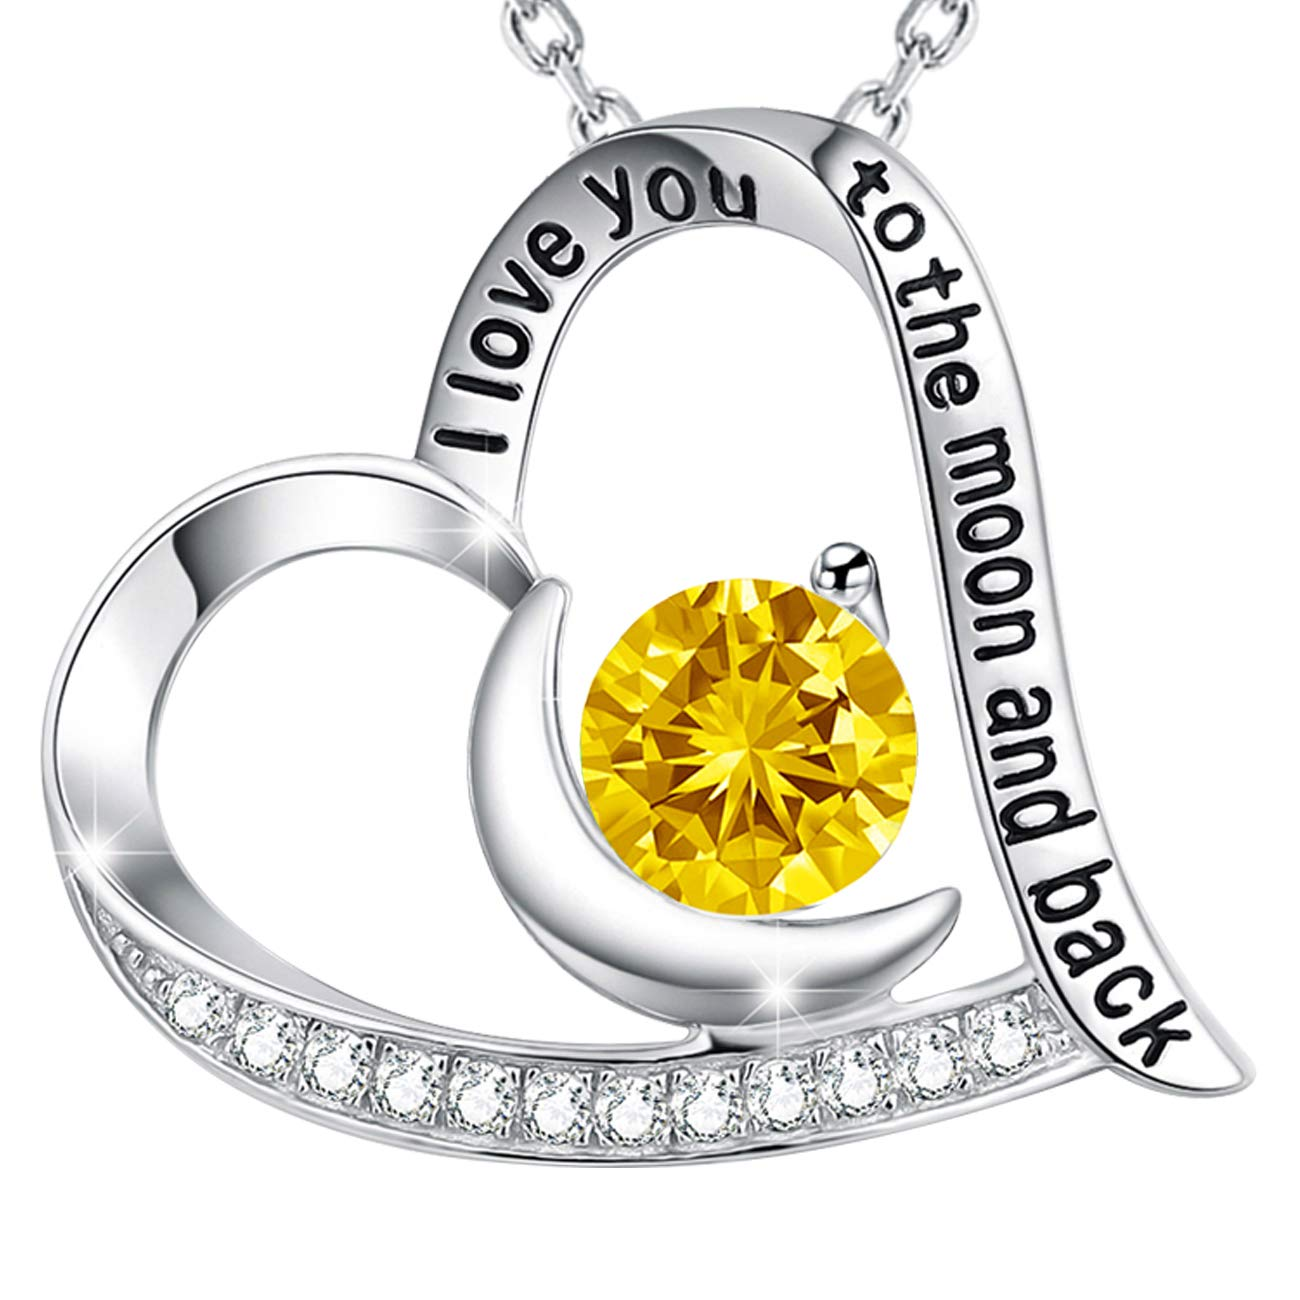 Elda&Co I Love You to The Moon and Back Heart Pendant November Birthstone Yellow Citrine Swarovski Necklace Sterling Silver Fine Jewelry Birthday Gift for Women for Her